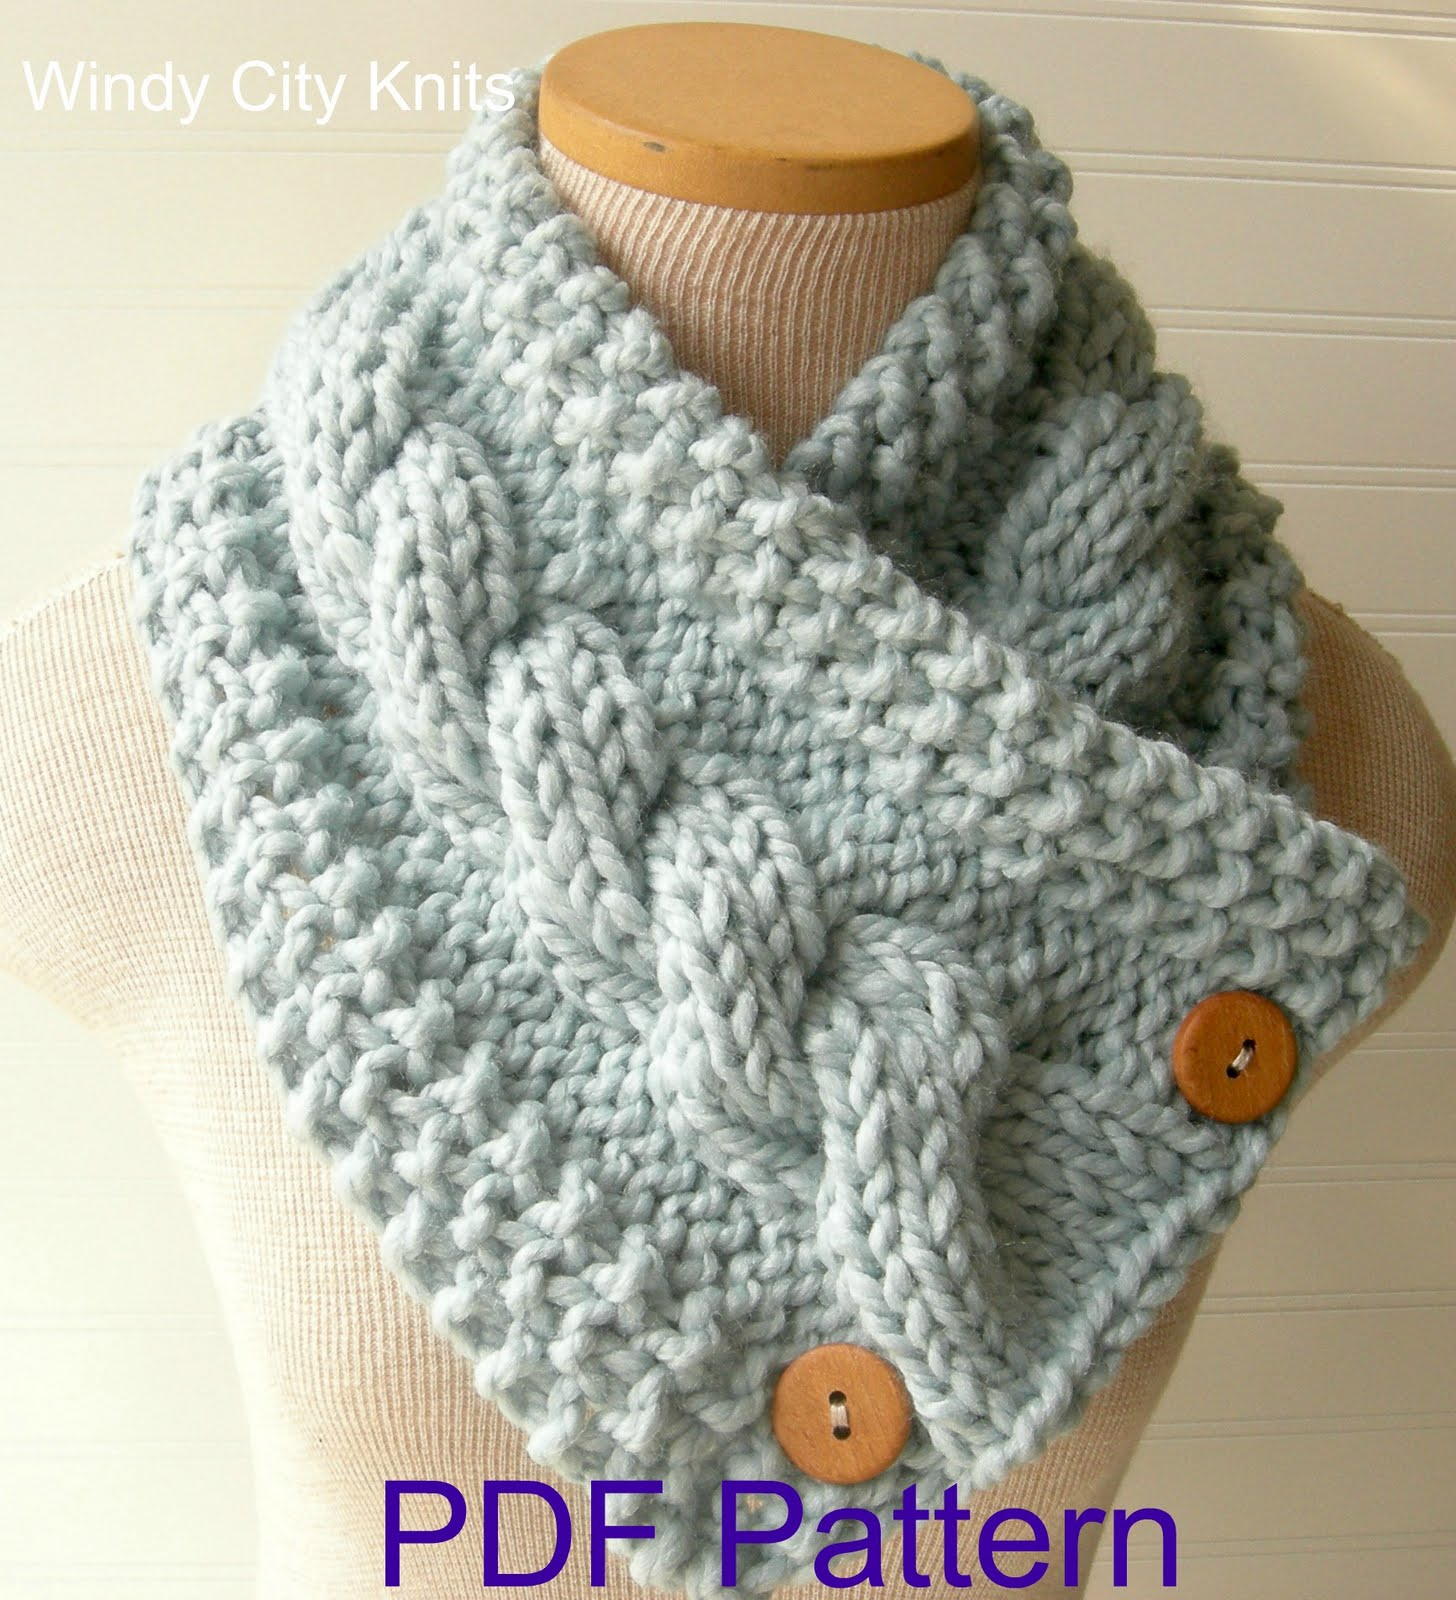 Cable Knitted Scarf Pattern Windycityknits Knit Cable Cowl Scarf Pattern Pdf